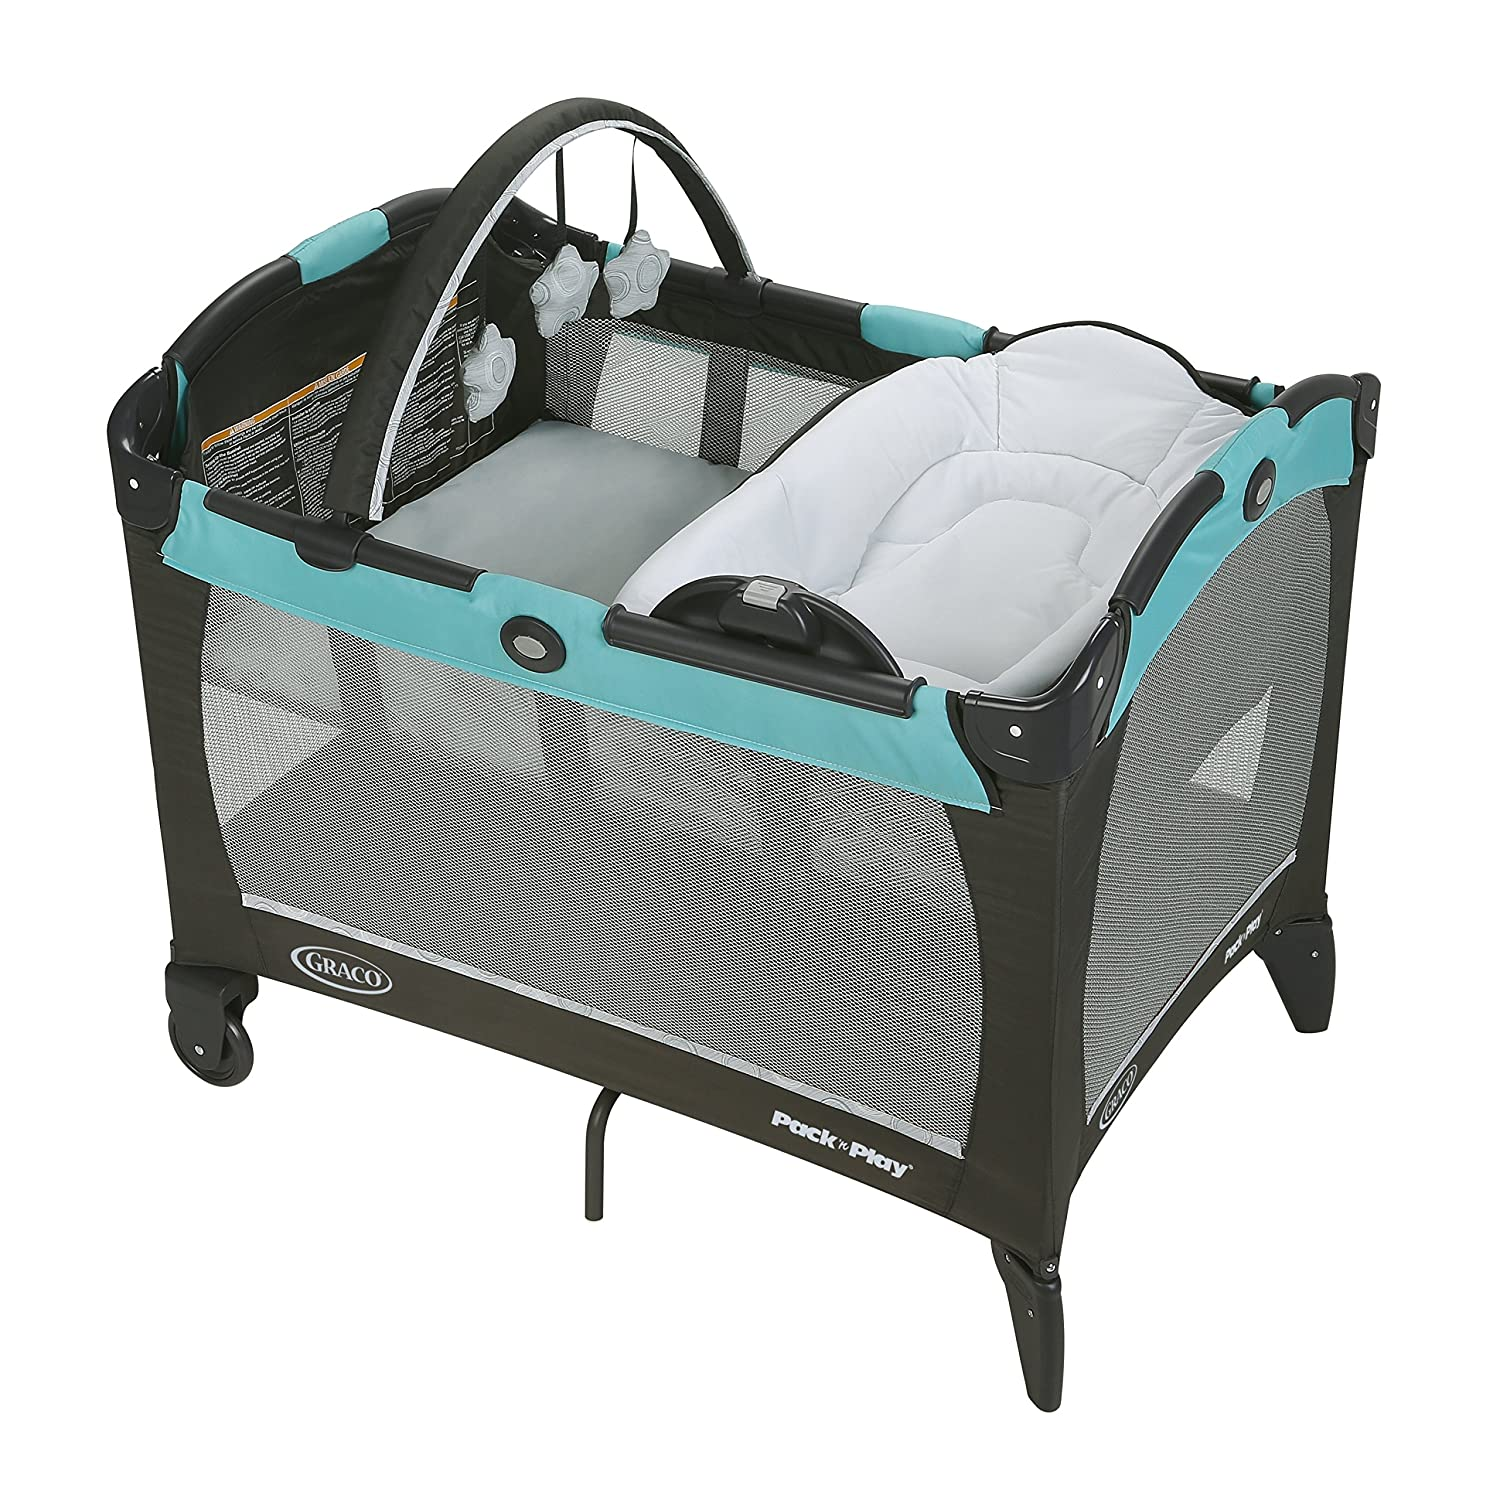 Graco Pack 'n Play with Reversible Lounger & Changer, Briar 1996208